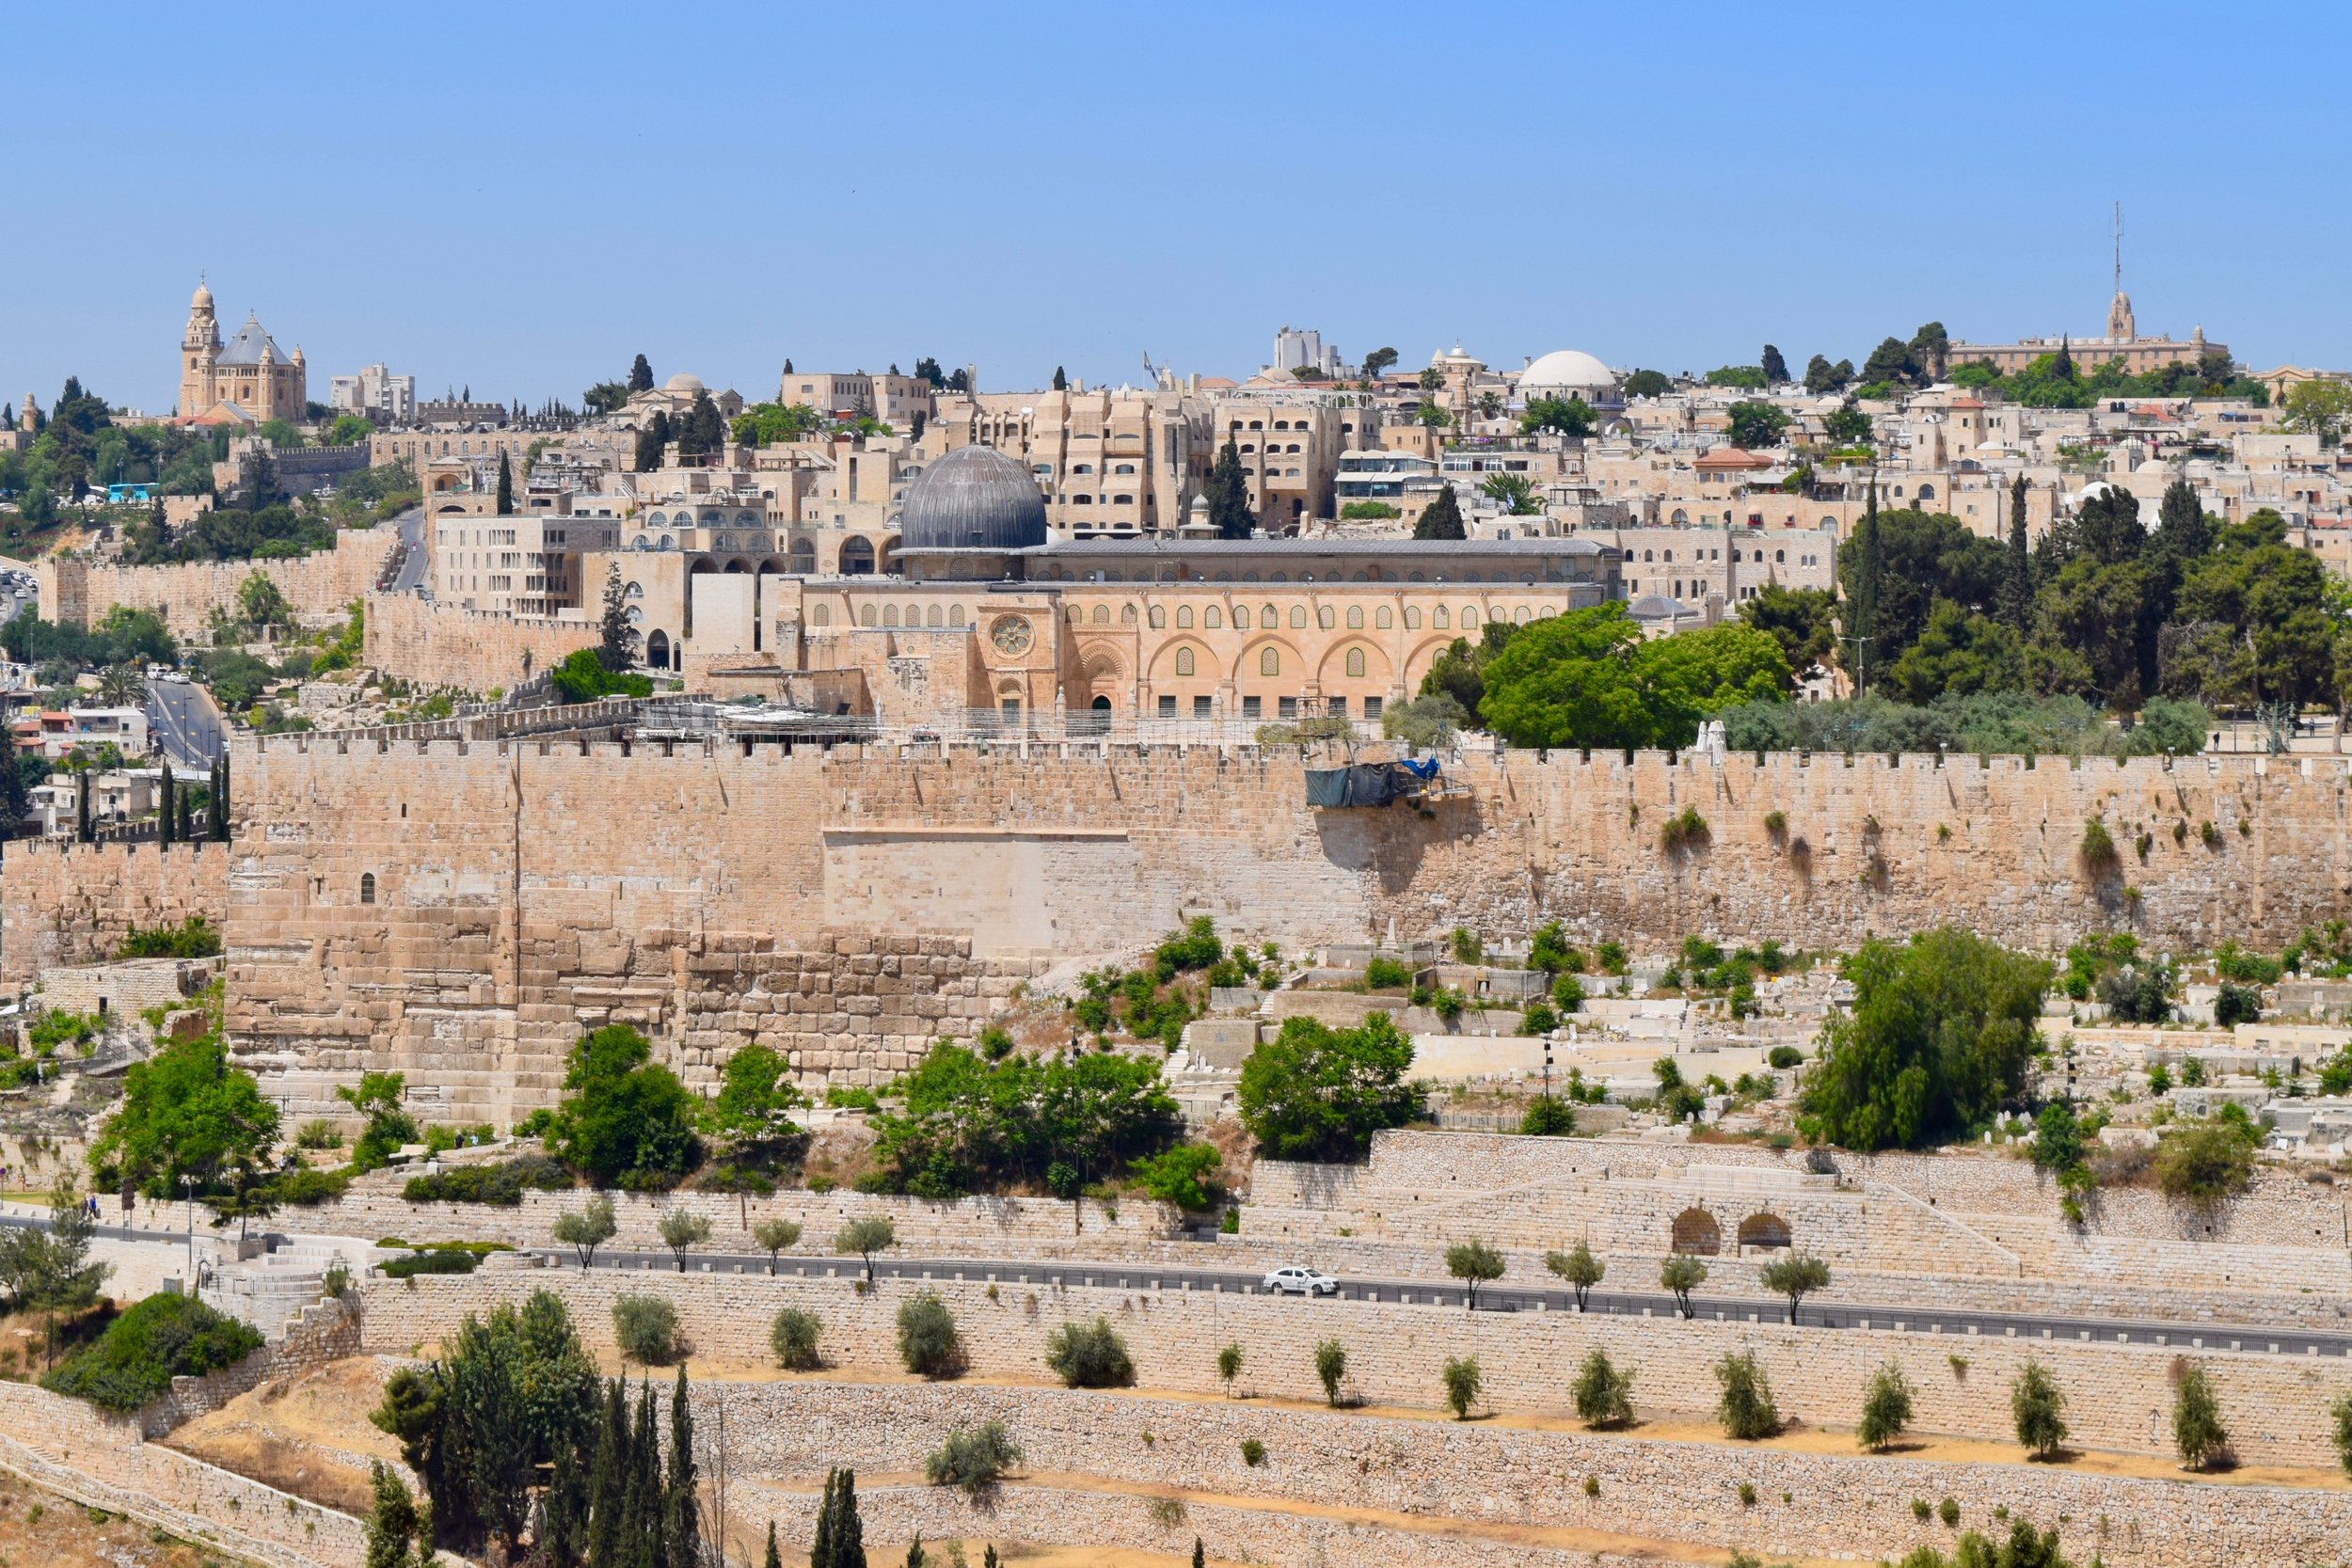 Al-Aqsa Mosque from the Mount of Olives